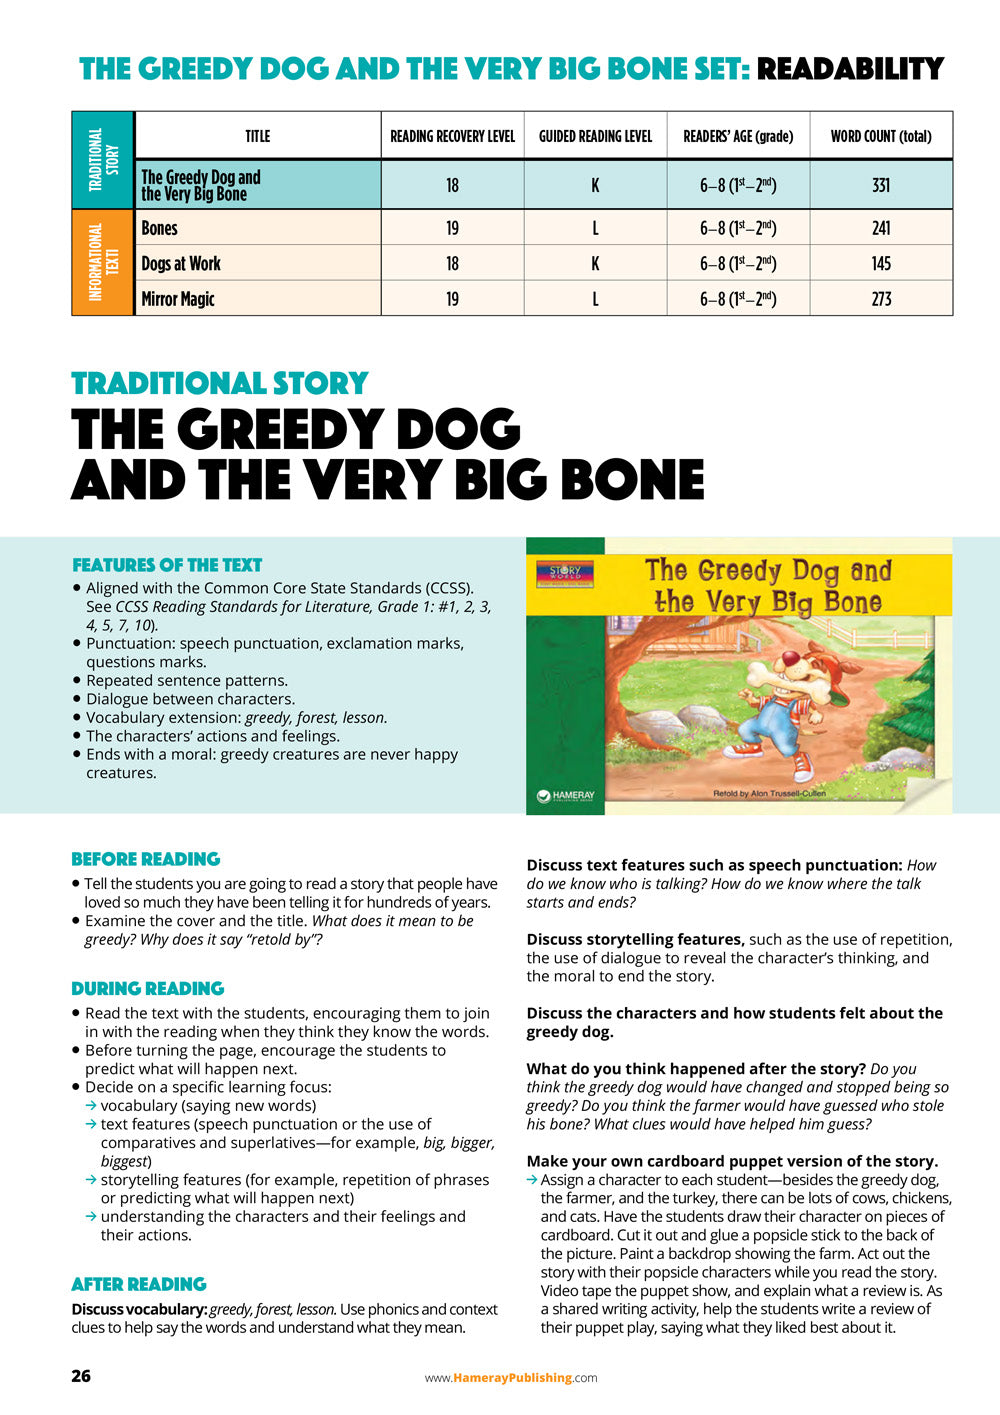 The Greedy Dog and the Very Big Bone Teacher's Guide